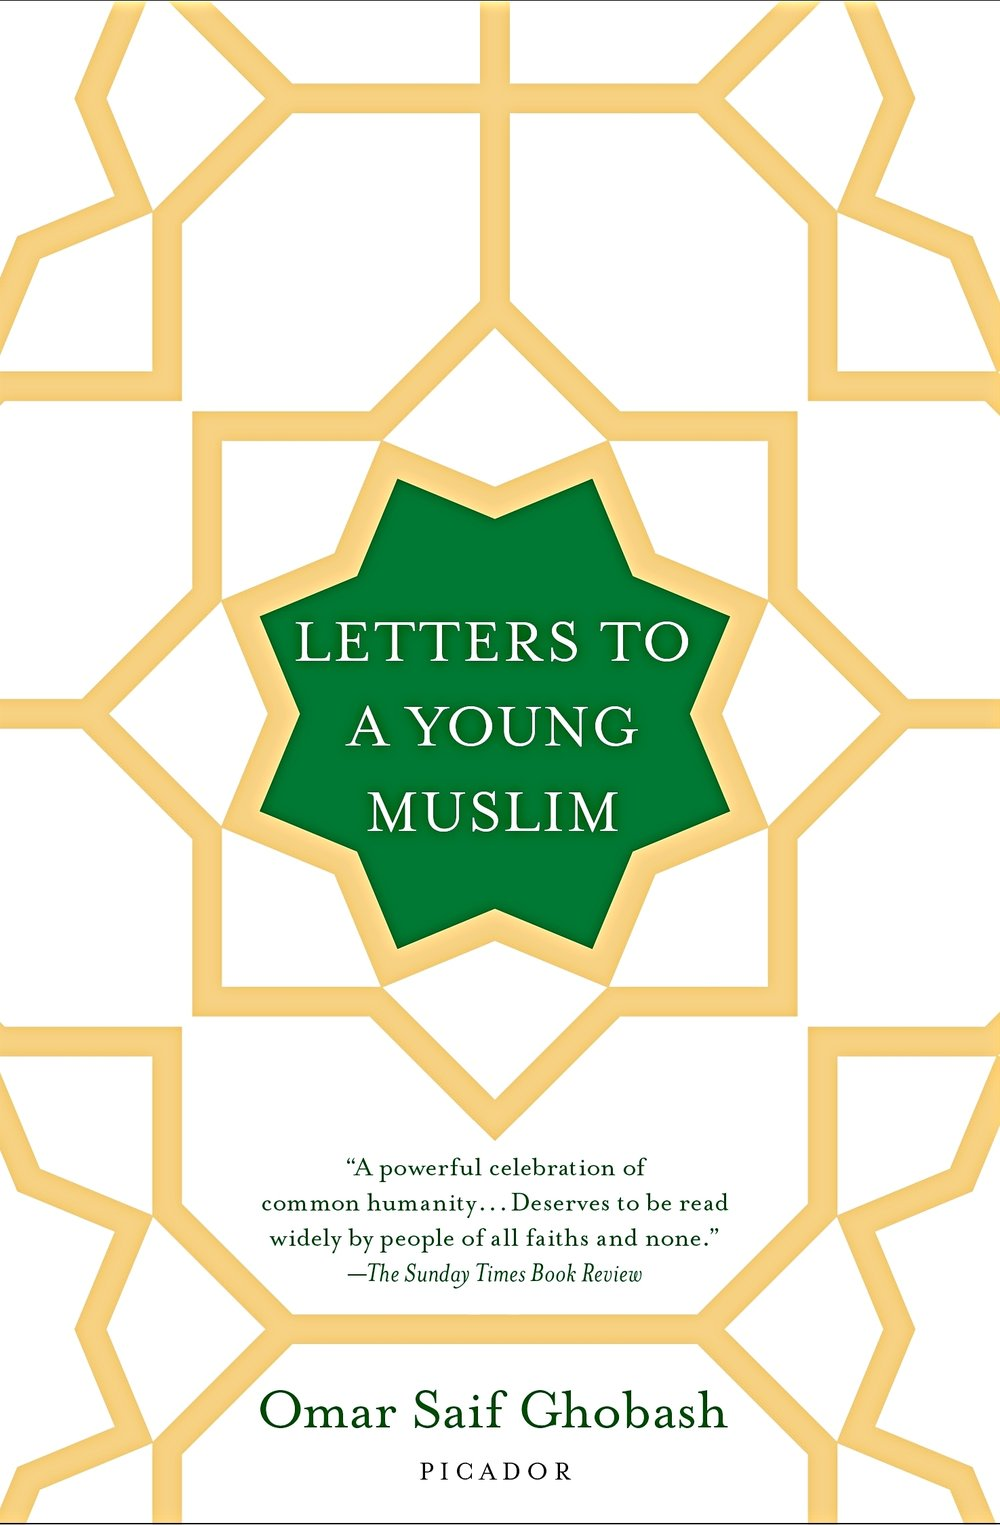 LETTERS TO A YOUNG MUSLIM   Picador    January 3, 2017  Hardcover